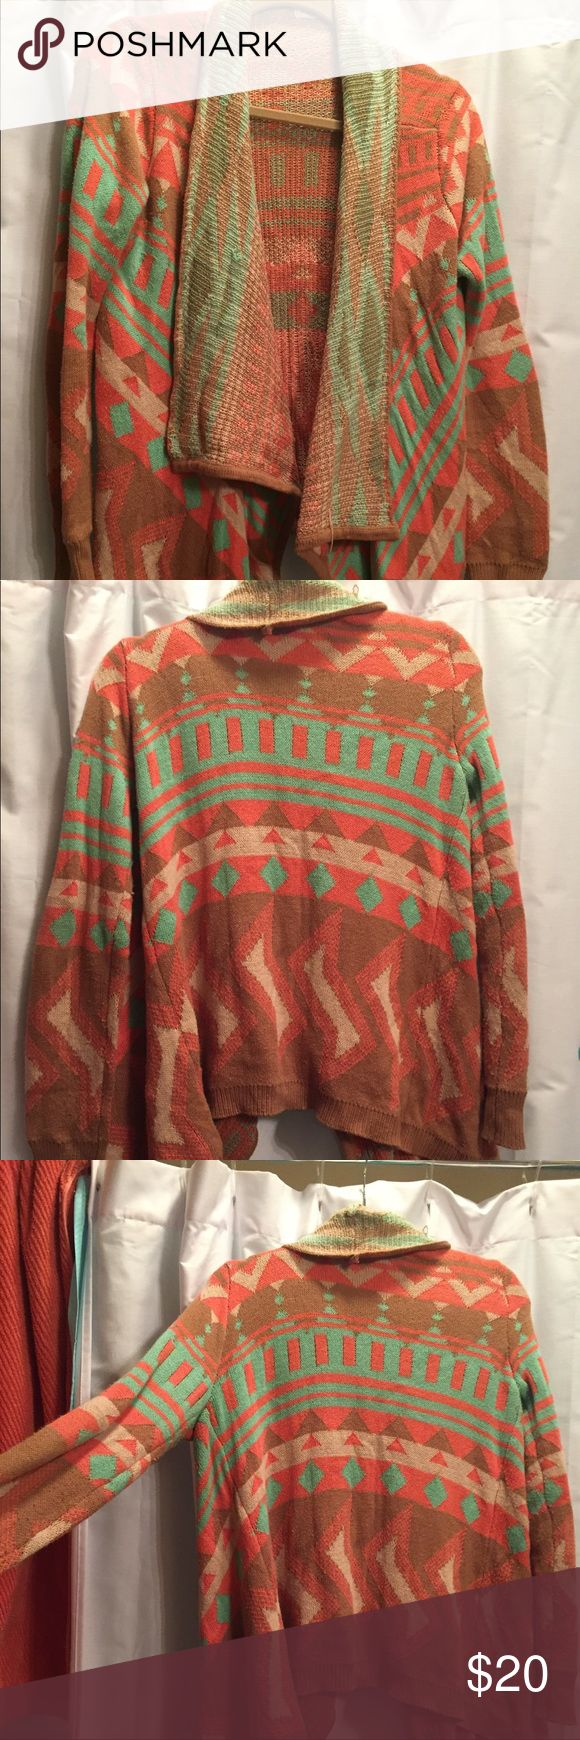 Tribal sweater size small Love this sweater. It's a small, but fits like a medium. I have too many tribals and need to size down my closet. Blu Pepper Sweaters Cardigans